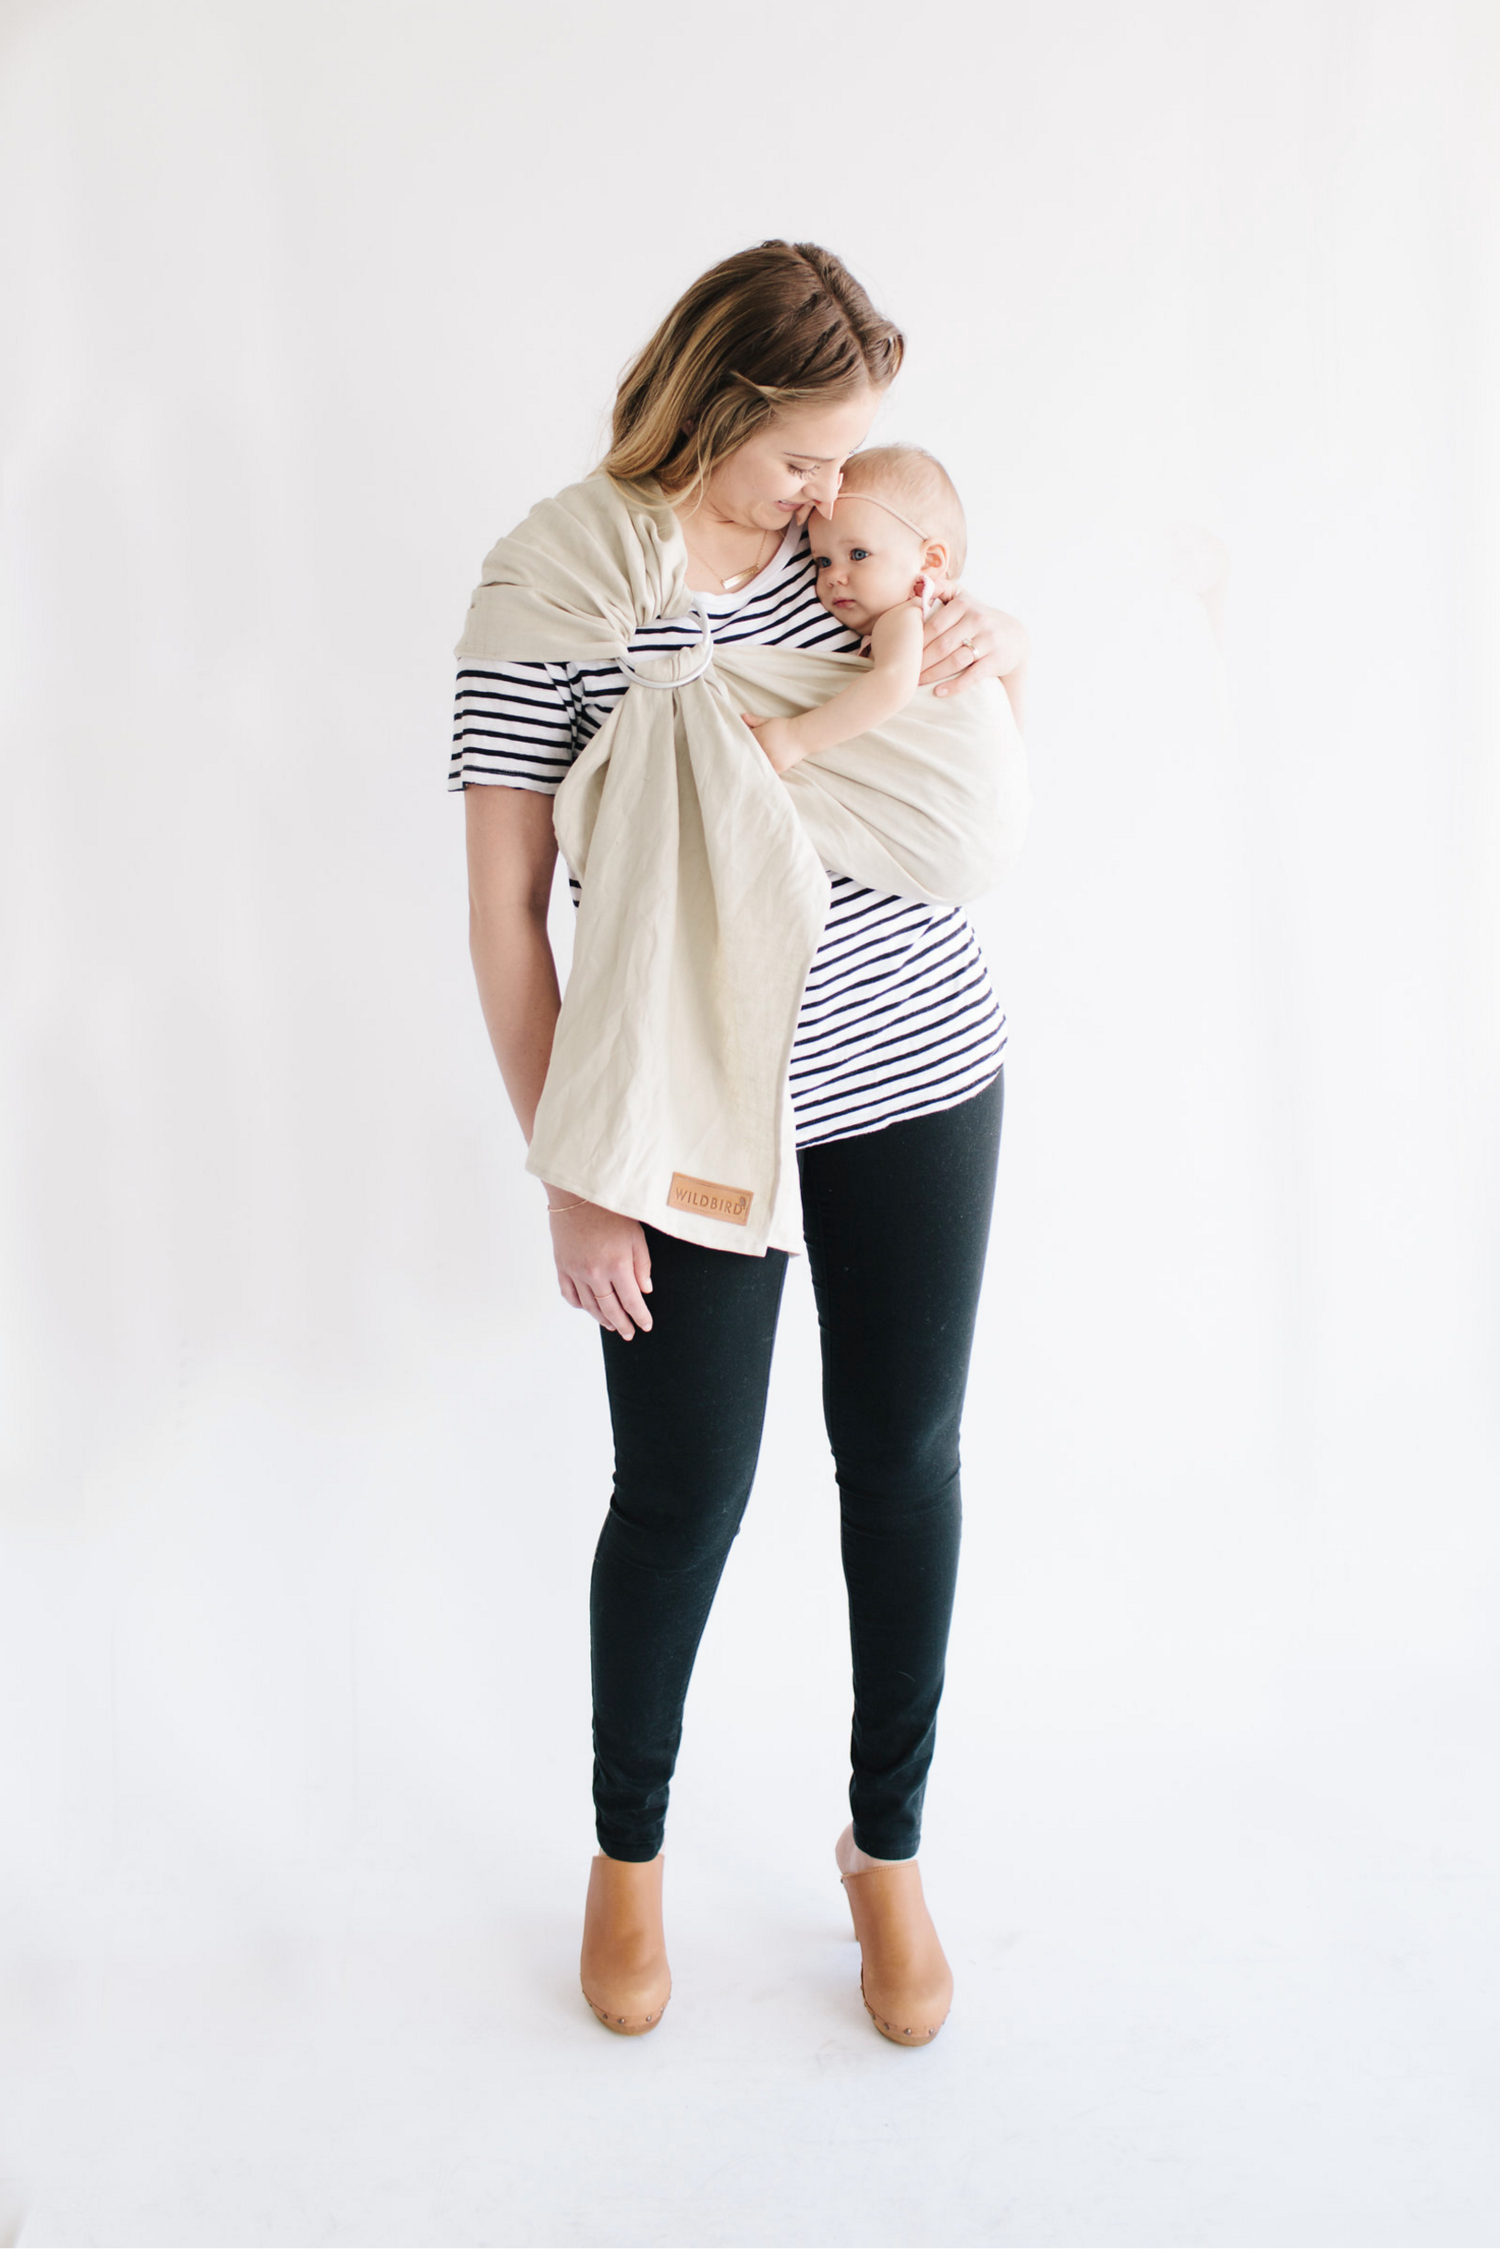 Pouch Portland Grey Nursing Cover Gender Neutral Carrier Baby Shower Gift Baby Slings by ION /& MAY Soft and Breathable Baby Carrier Natural Collection 100/% Bamboo fibers Cuddle Wrap